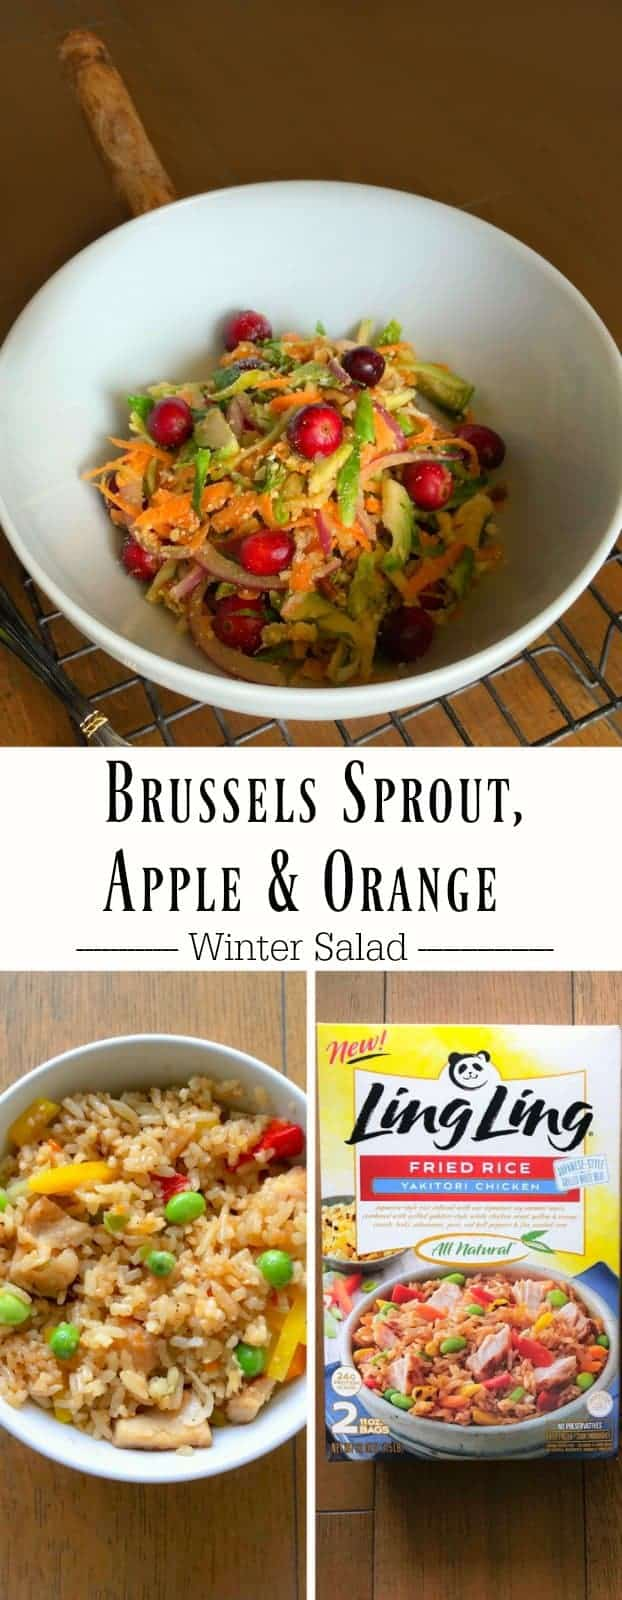 Brussels Sprout, Apple and Orange Winter Salad: #brussels #sprout #winter #salad #LingLingFriedRice #IC #ad